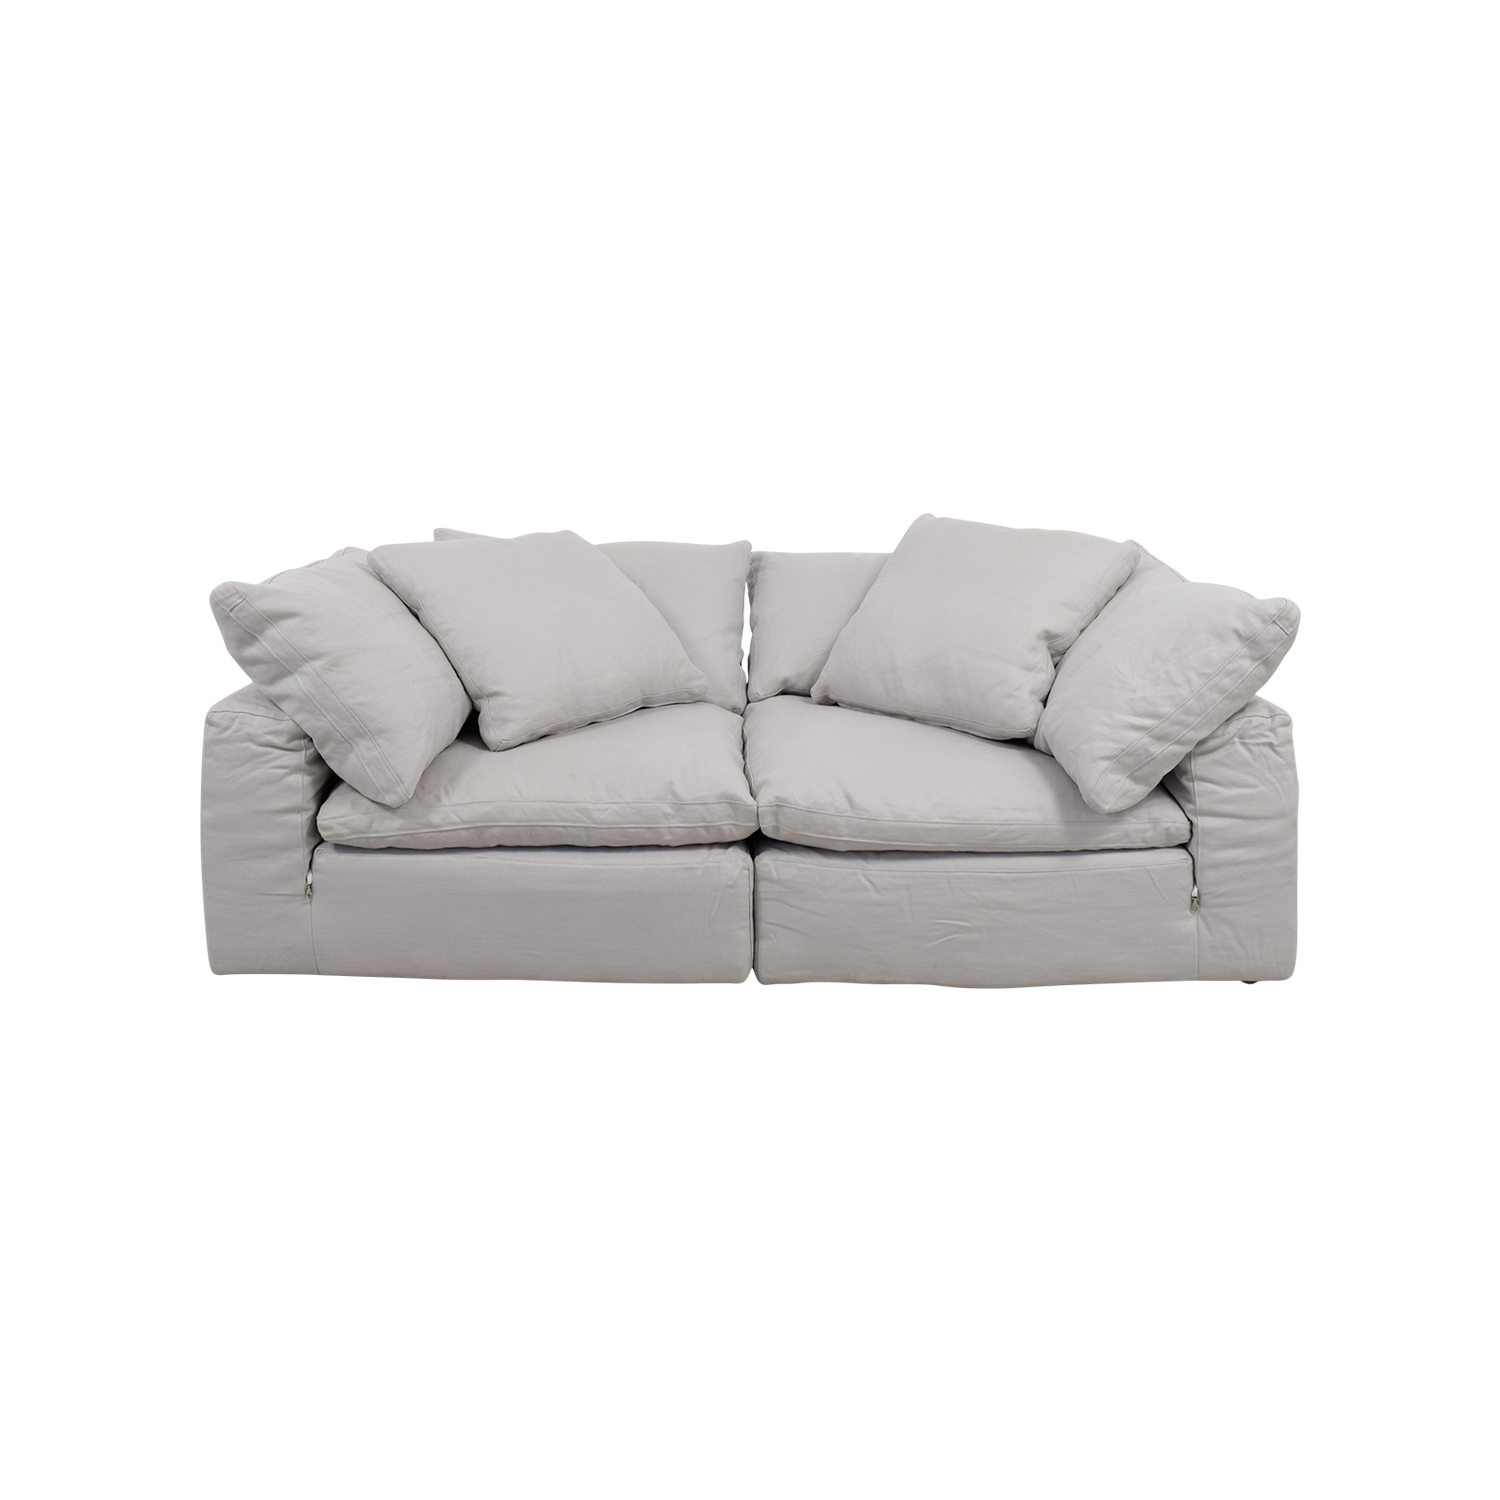 Buy Restoration Hardware Restoration Hardware The Cloud White Sofa Online  ...